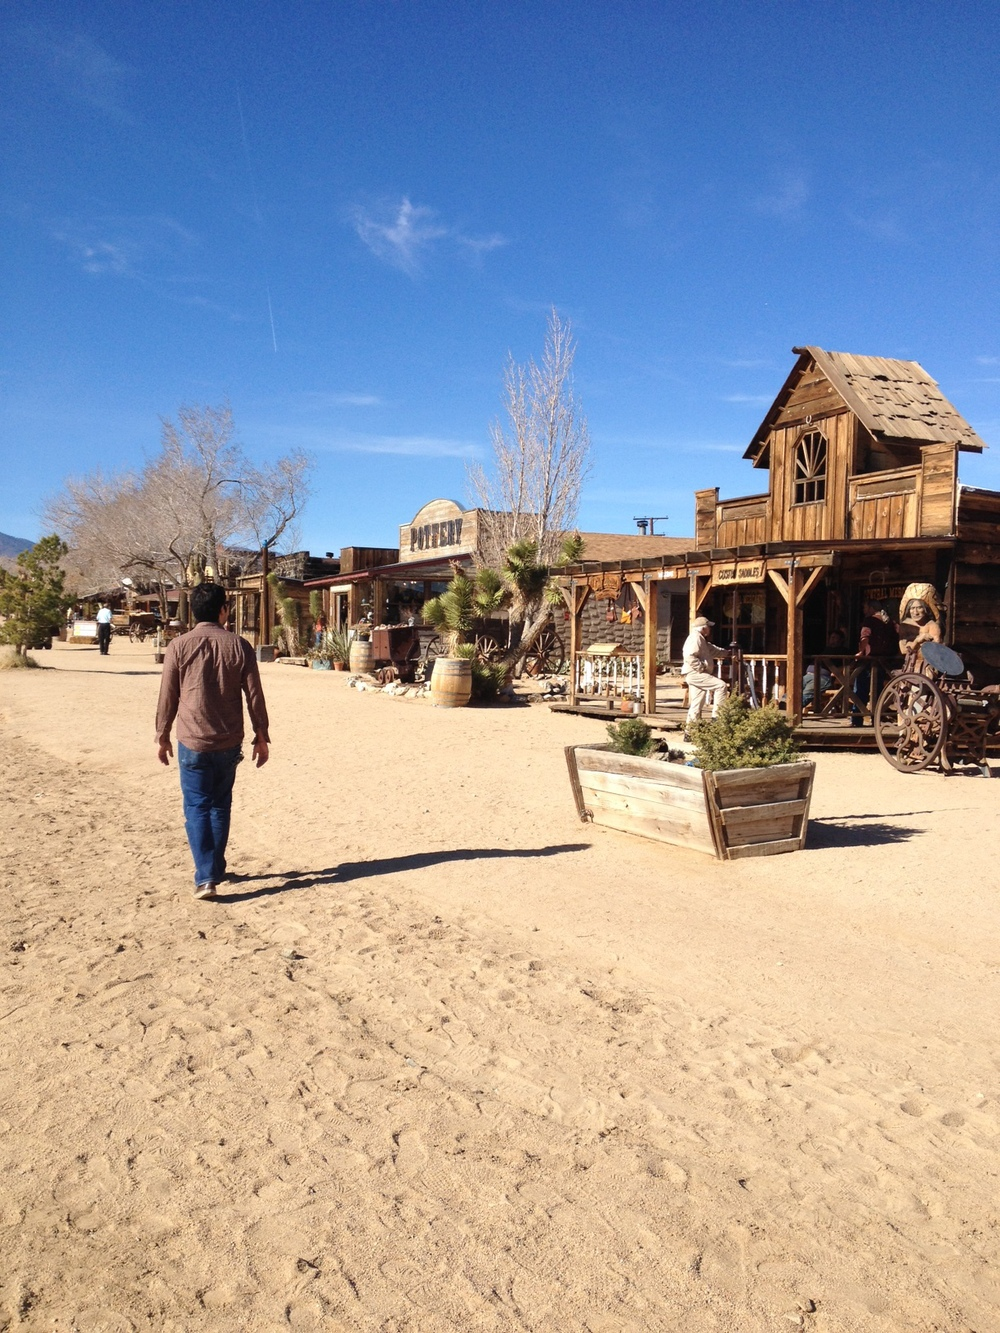 Pioneertown, a strip of old western buildings, some still in use as shops.